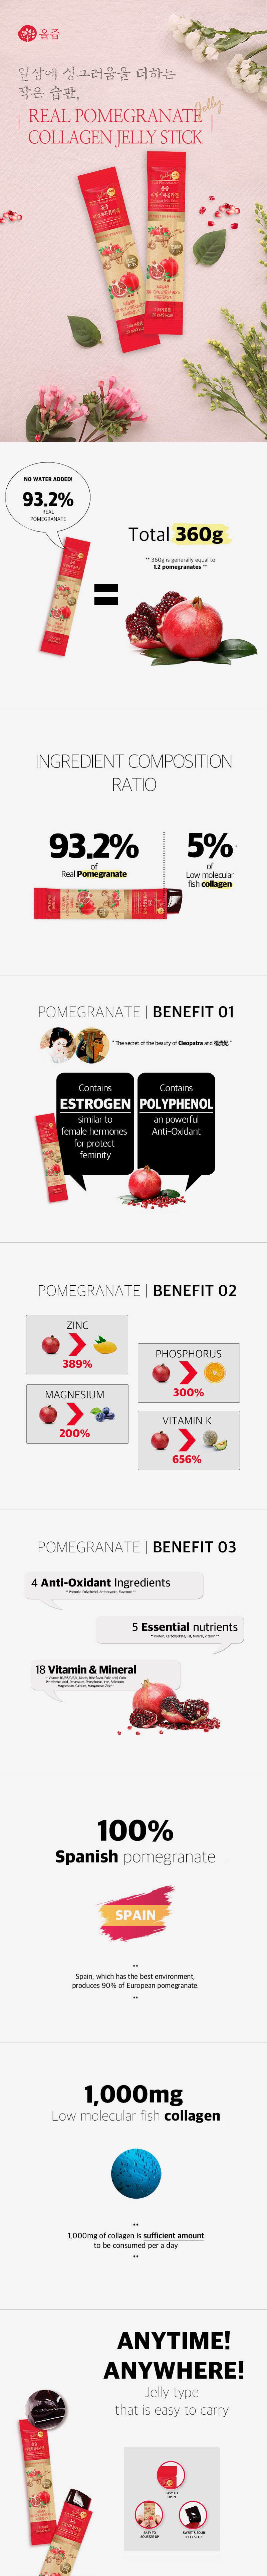 Real pomegranate collagen jelly stick